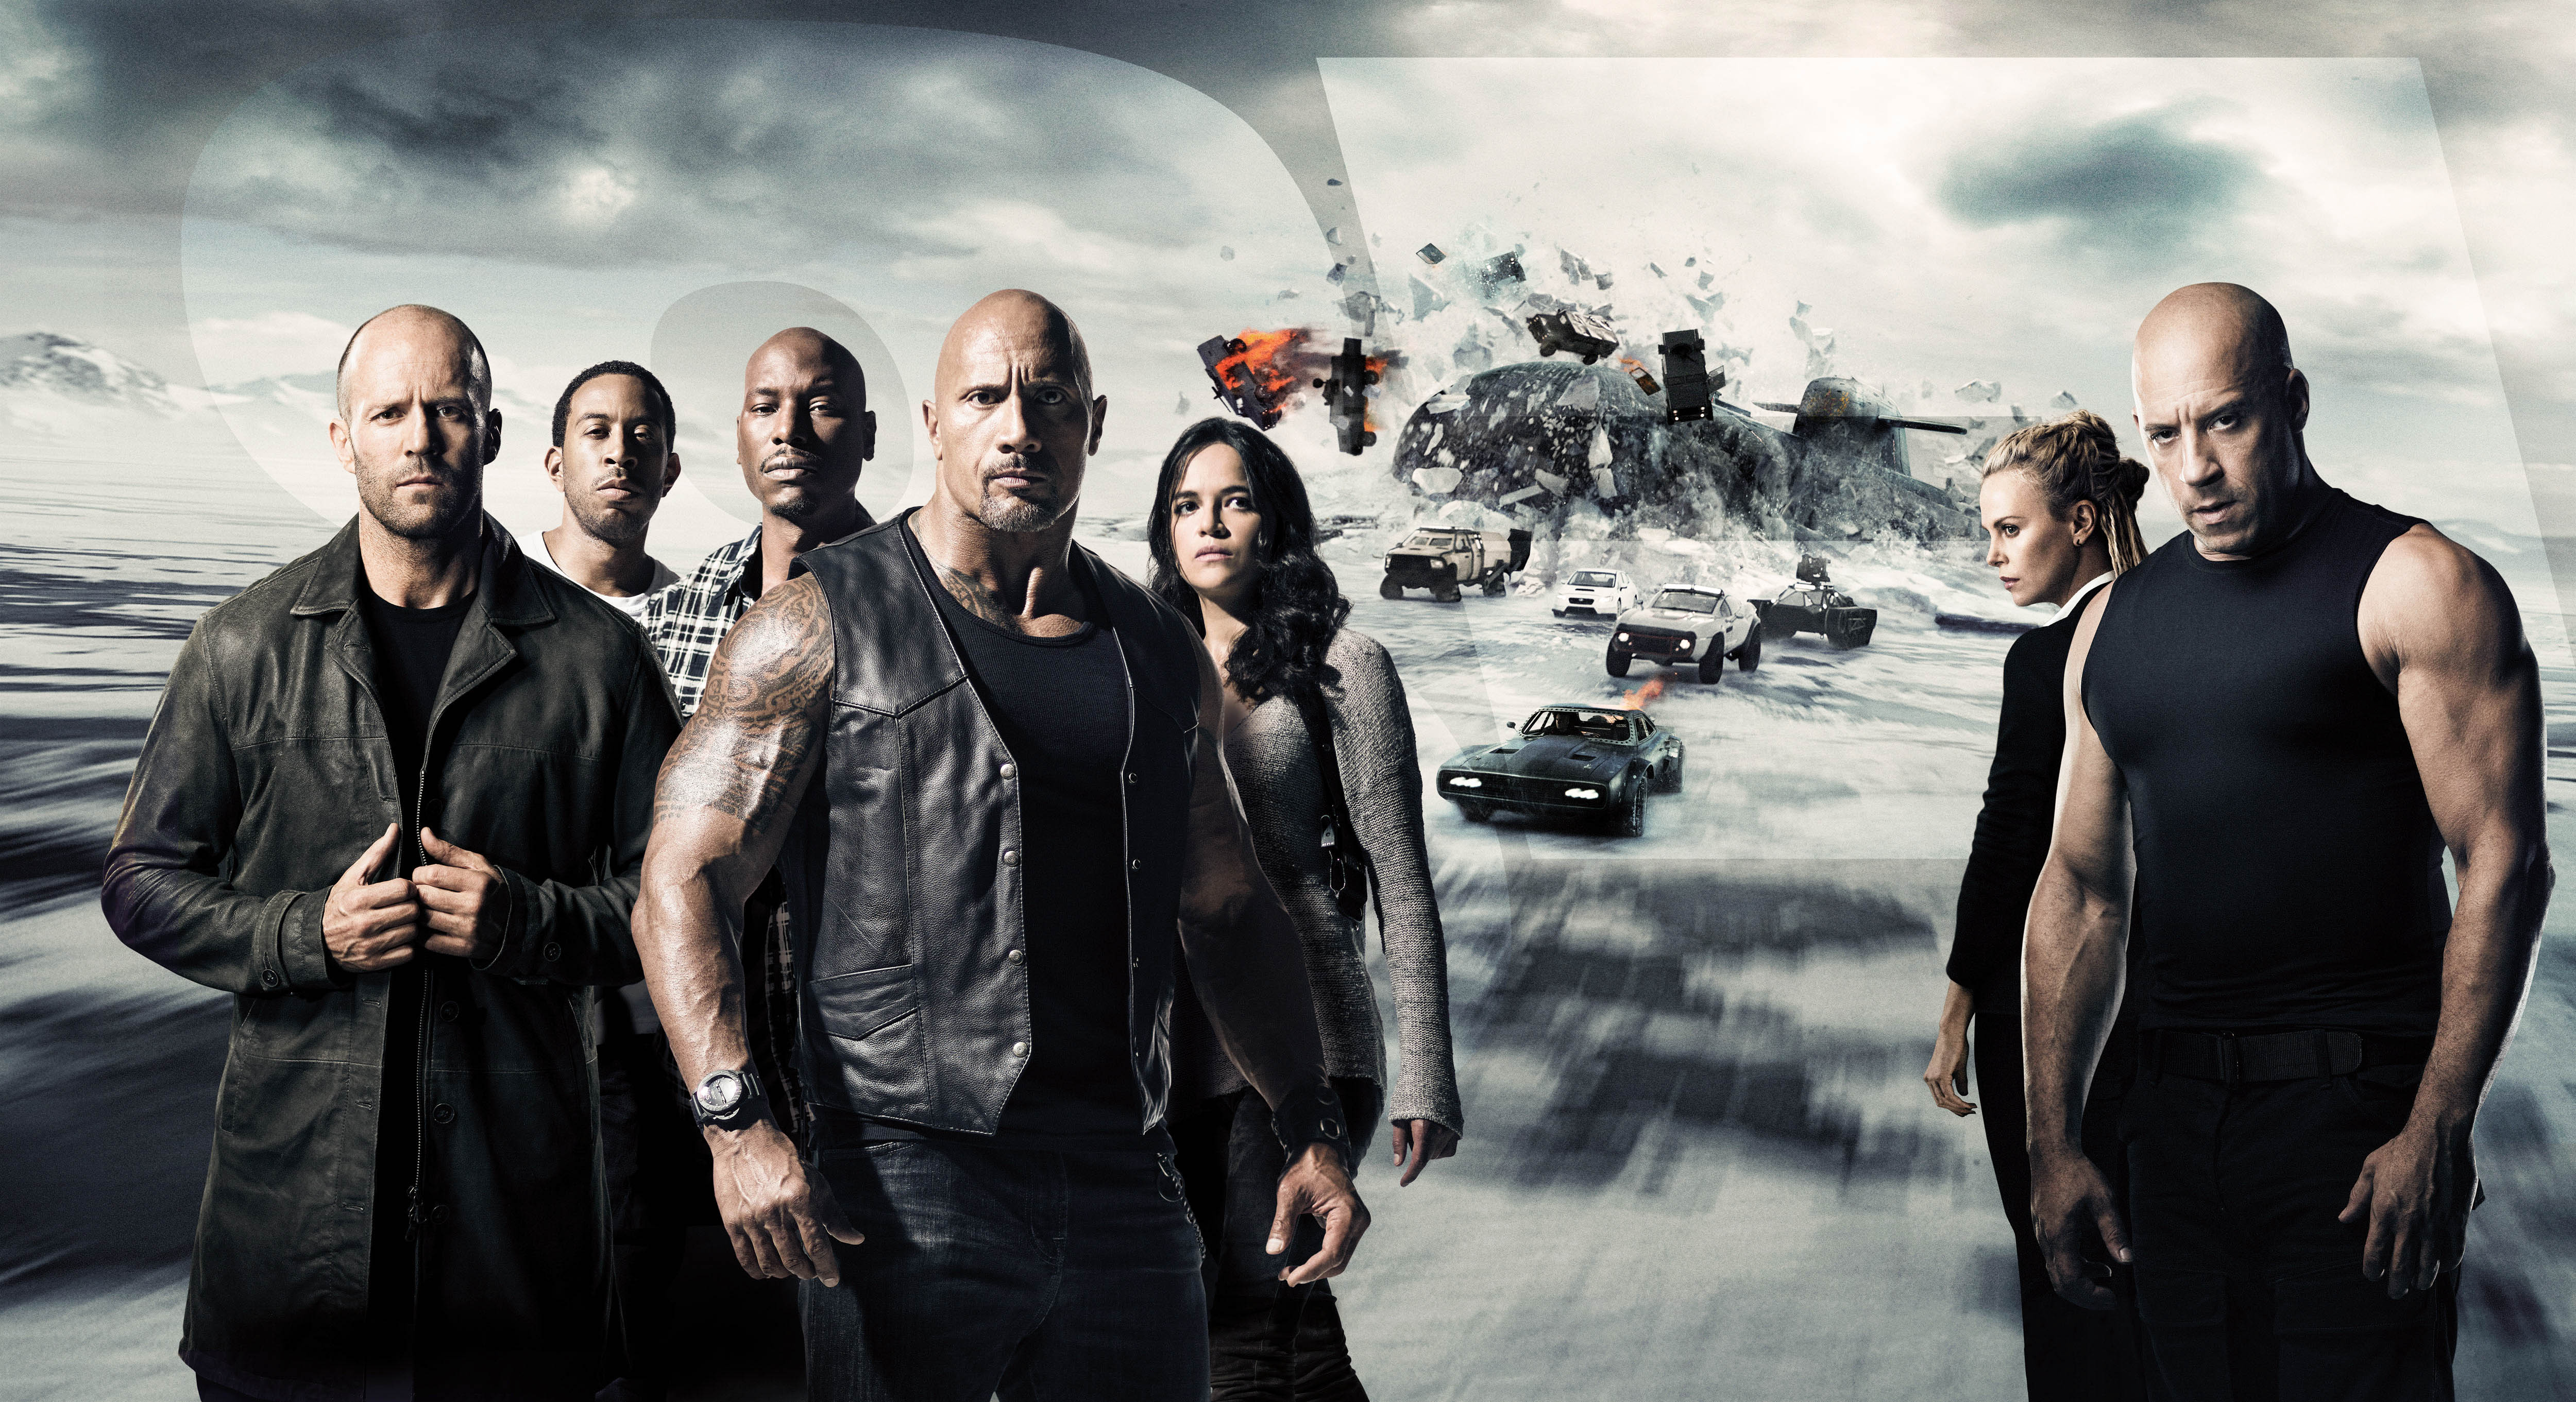 Fast And Furious Iphone 5 Wallpaper The Fate Of The Furious 2017 Wallpapers